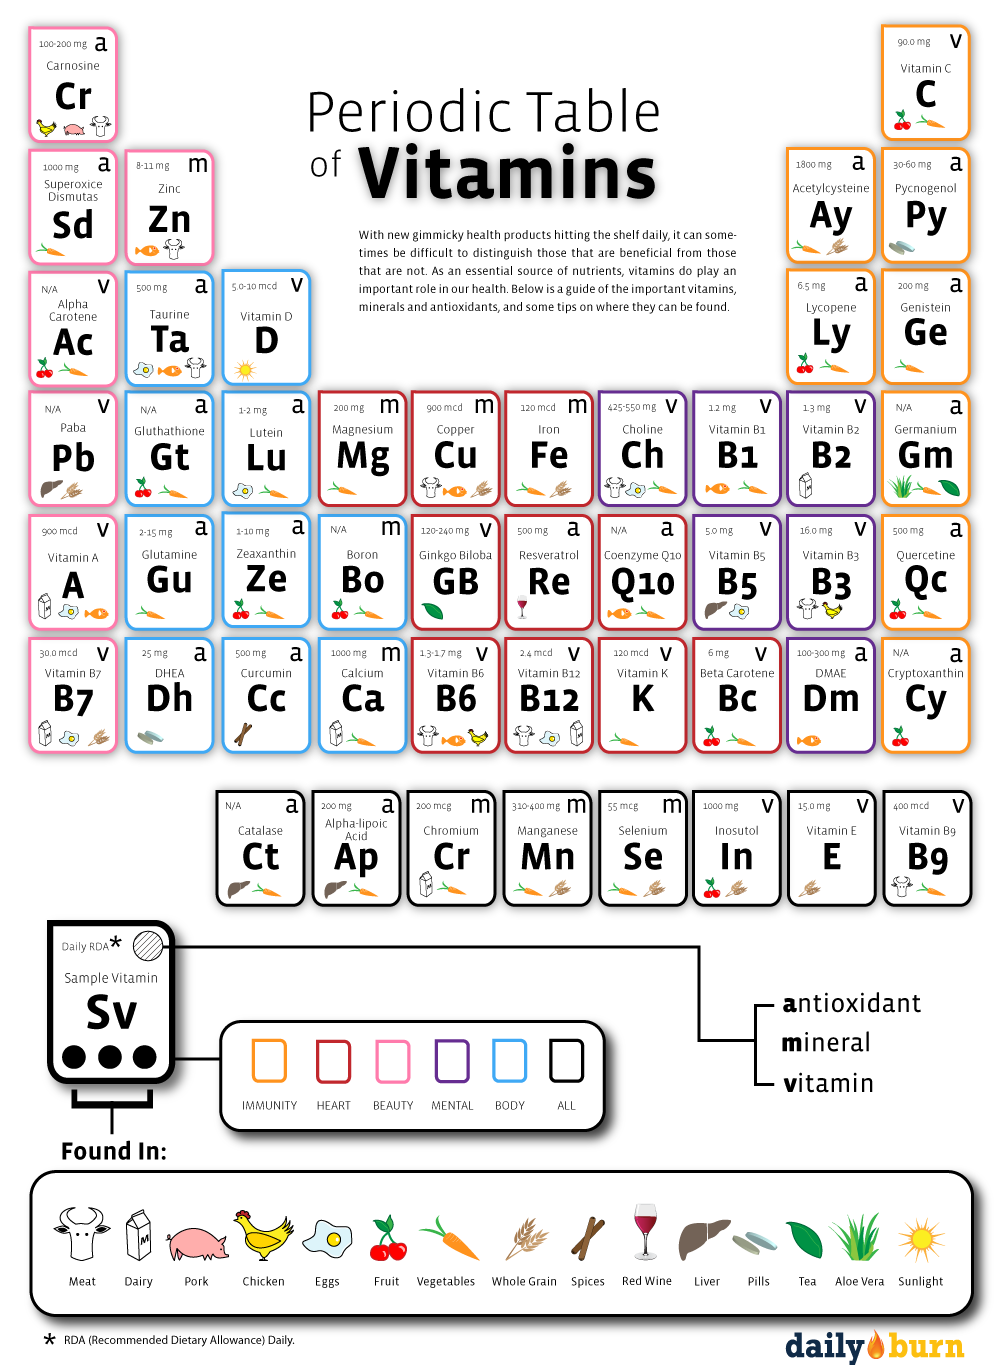 Creative And Cool Uses Of The Periodic Table